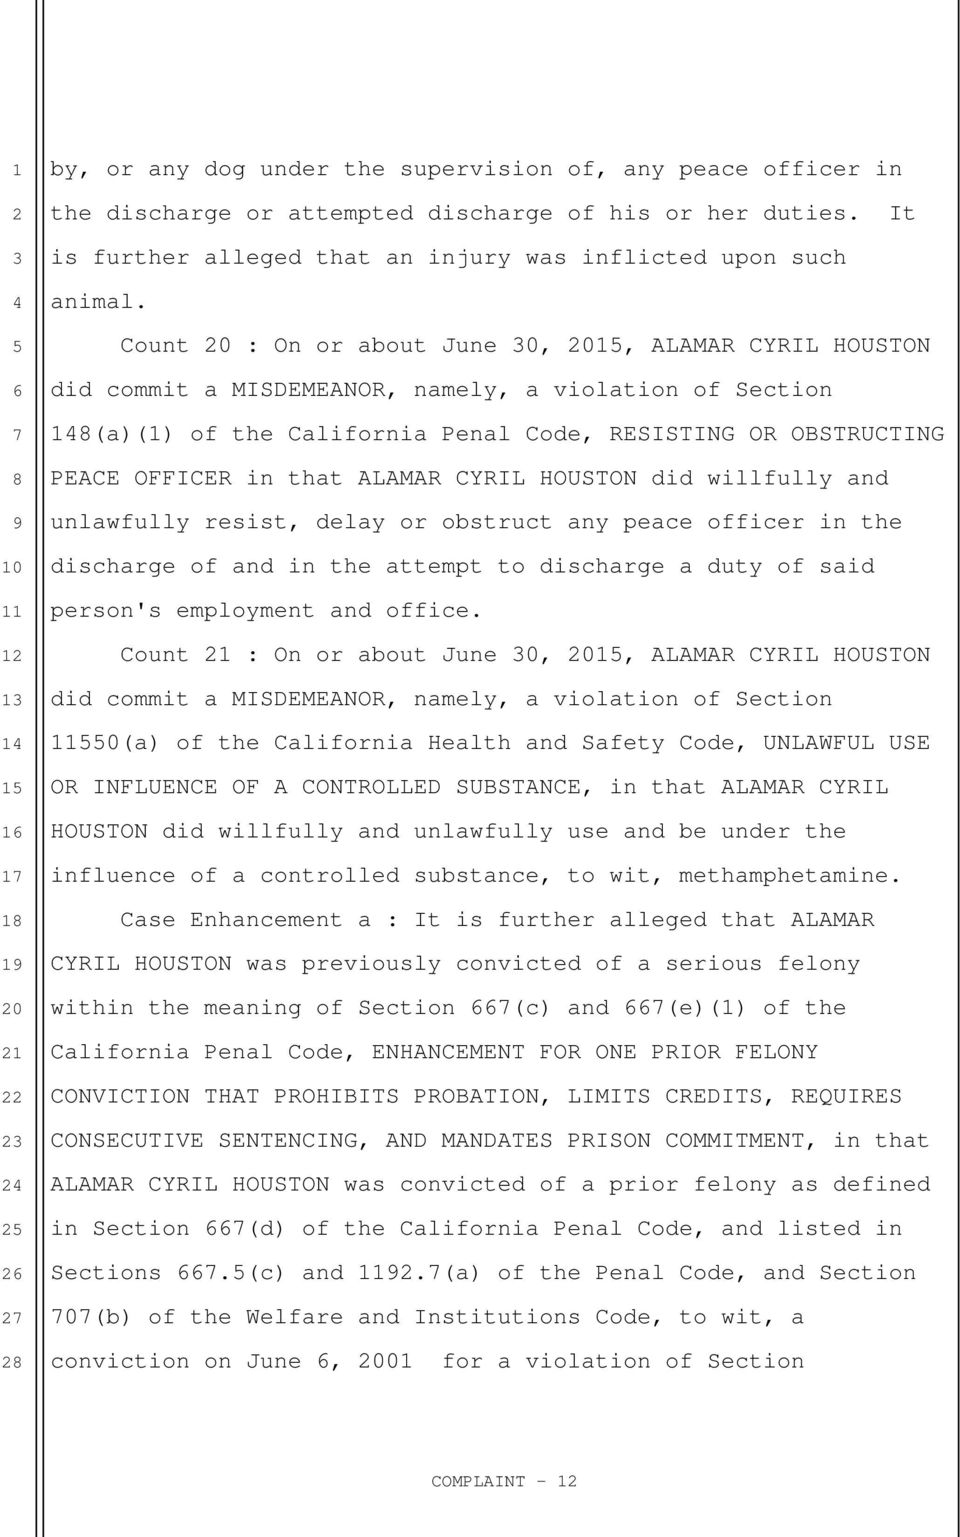 CYRIL HOUSTON did willfully and unlawfully resist, delay or obstruct any peace officer in the discharge of and in the attempt to discharge a duty of said person's employment and office.